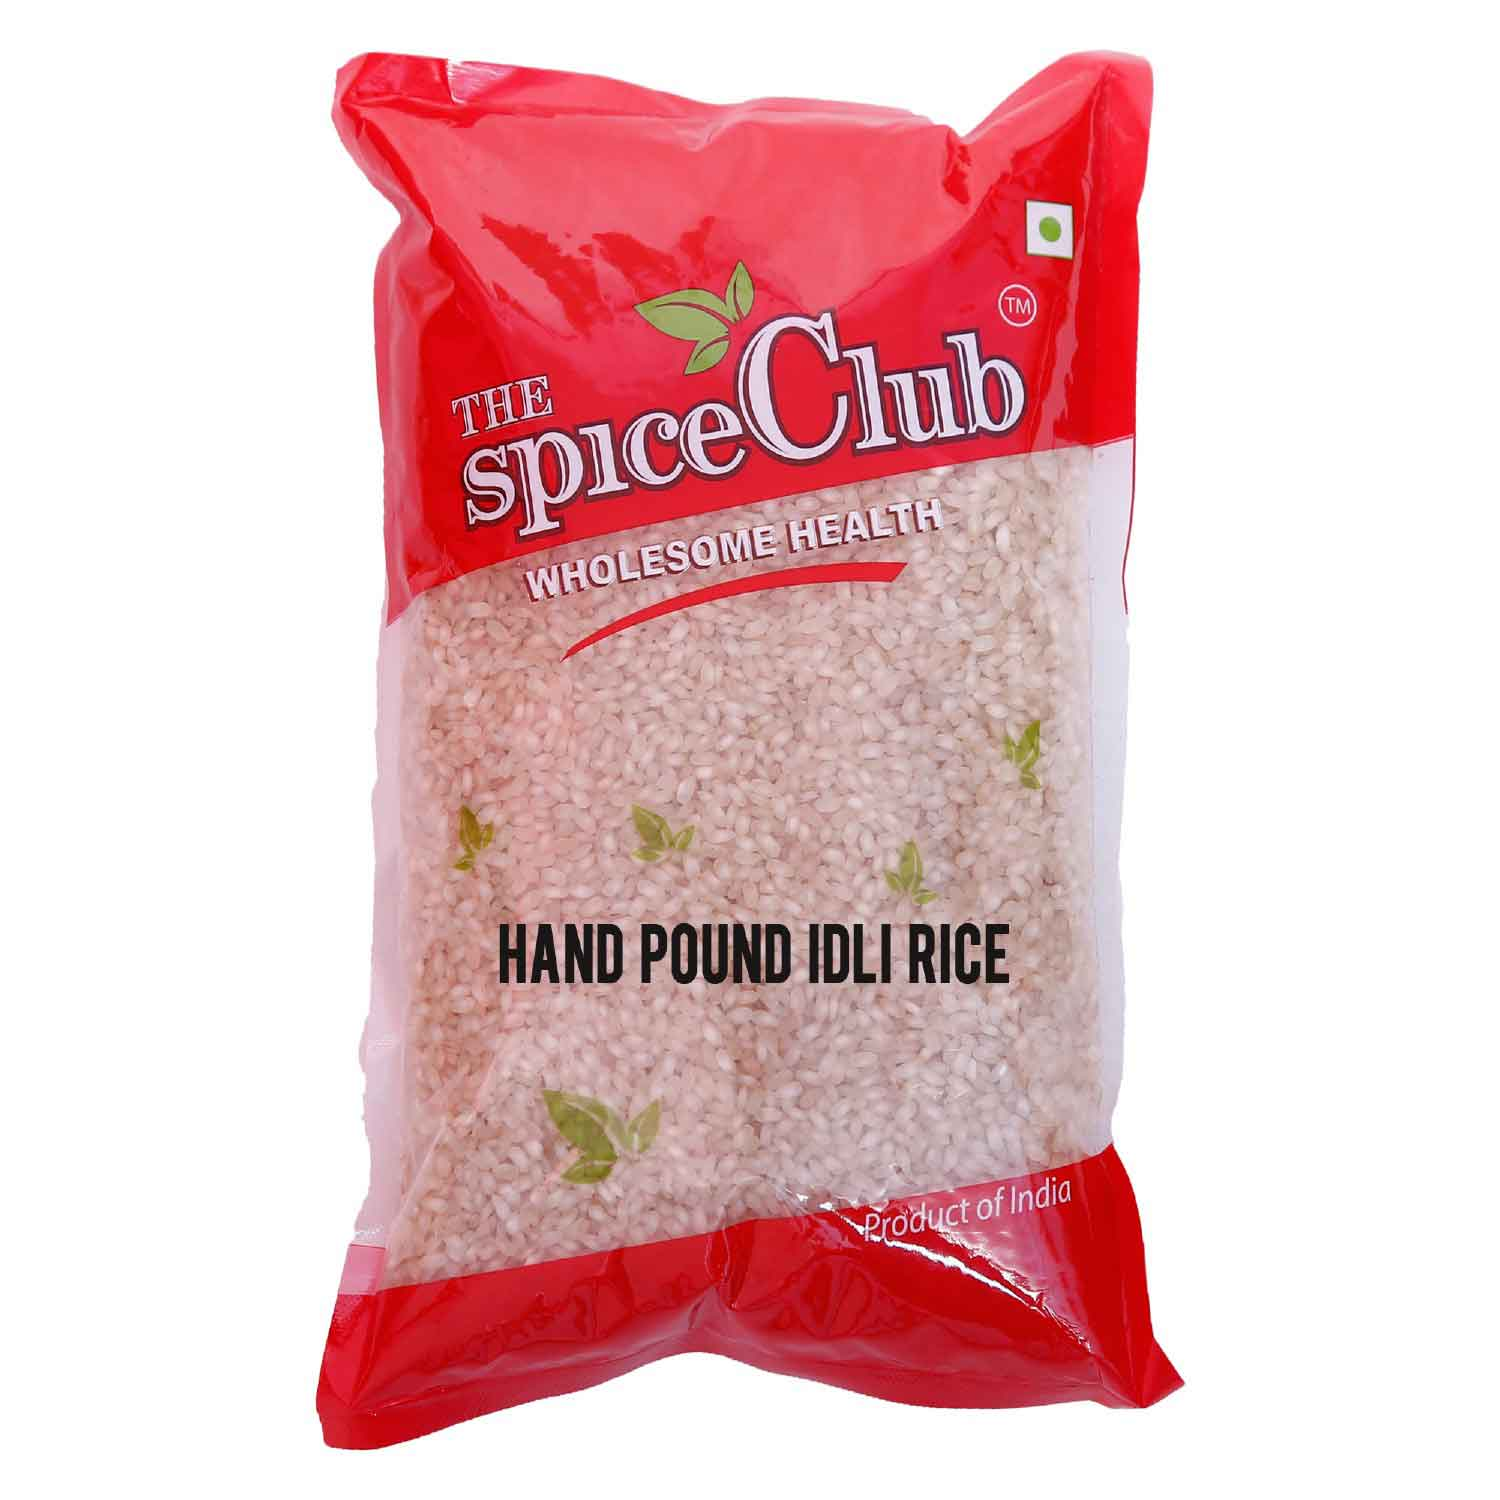 Hand Pound Idli Rice - 100% Natural & Traditional